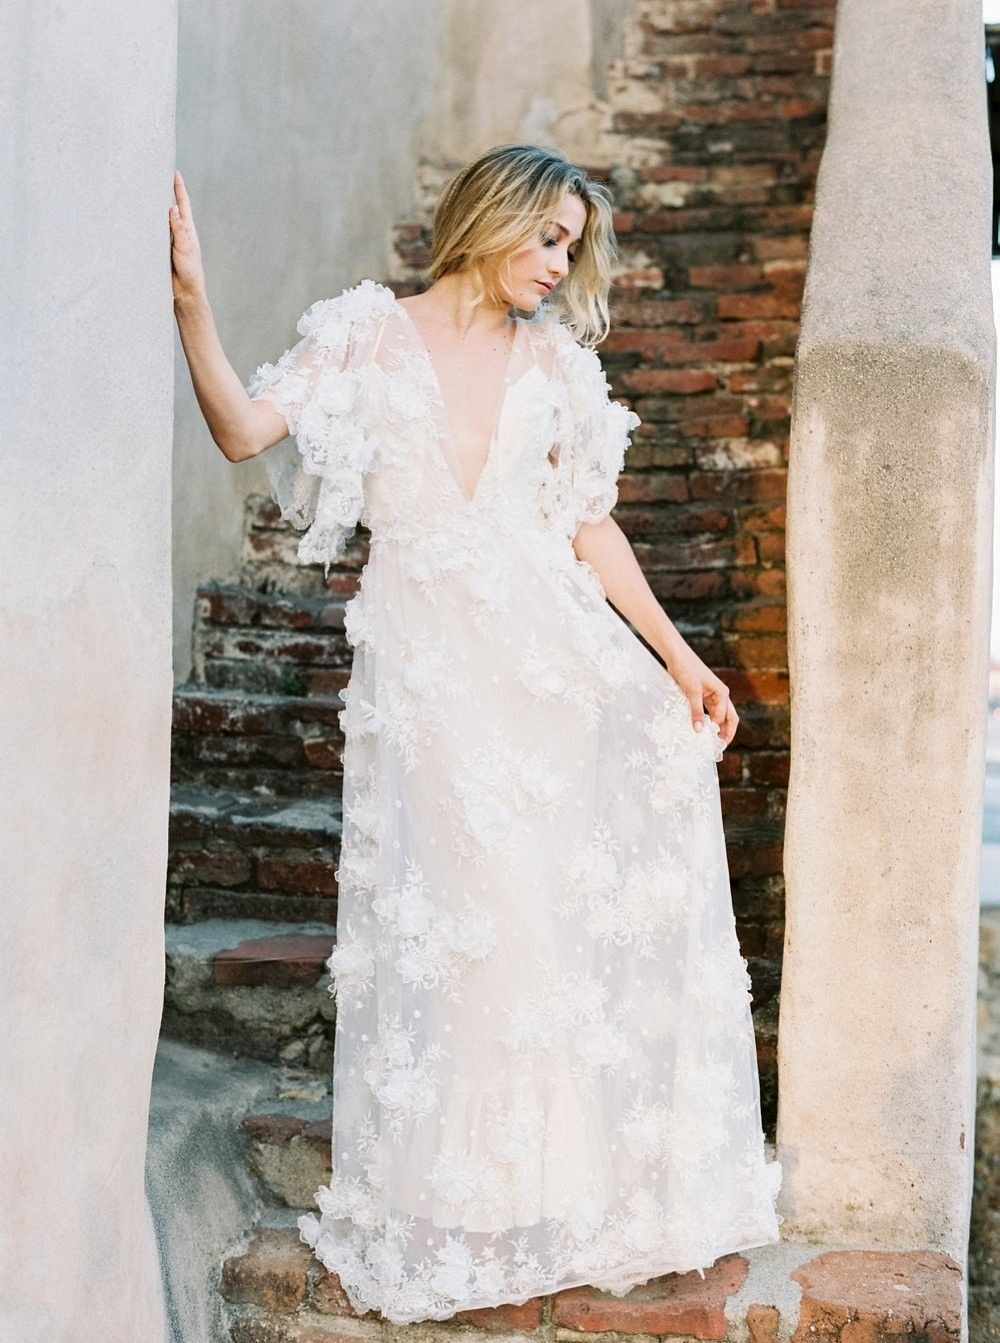 Bespoke Textured Gossamer Gown in a Historic Mission